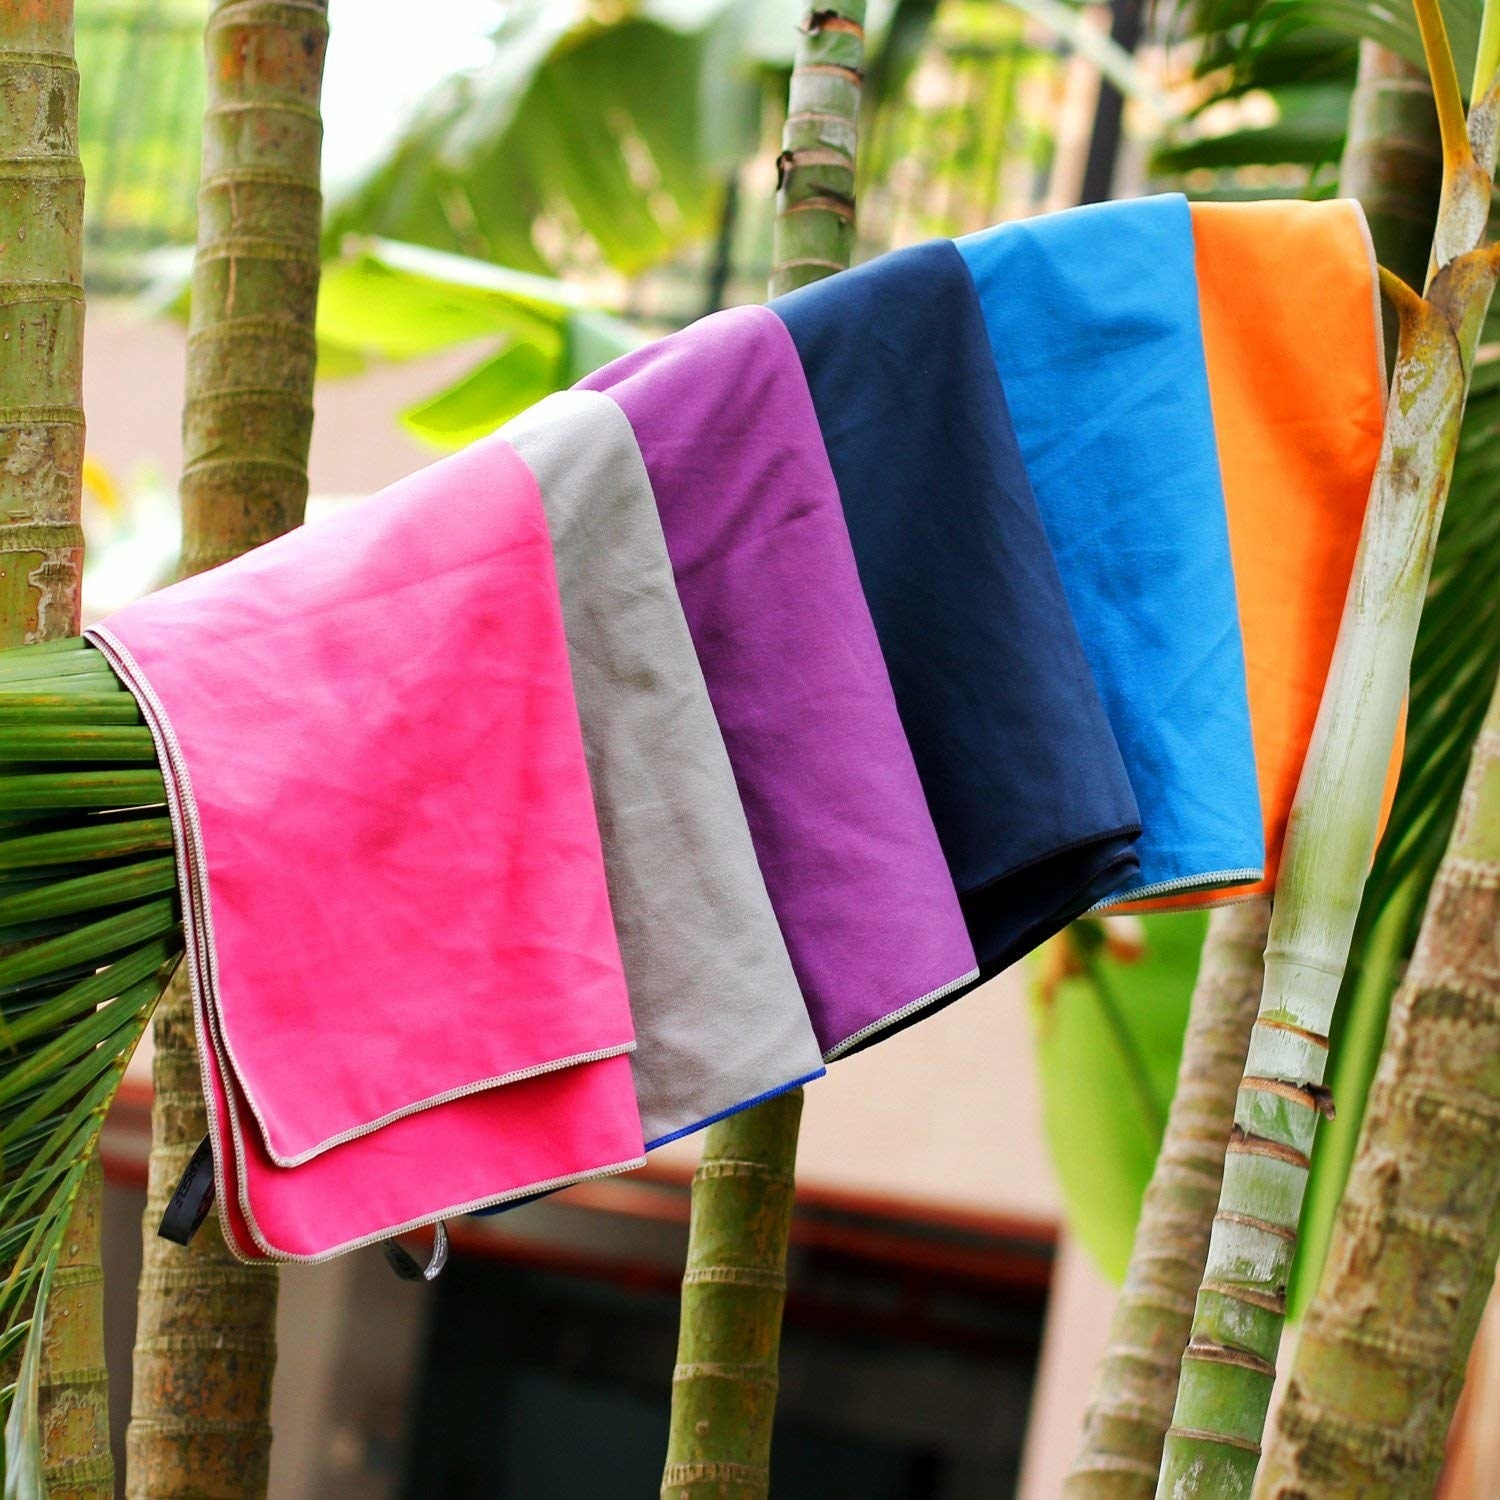 the towel in various colors hanging on a palm tree branch